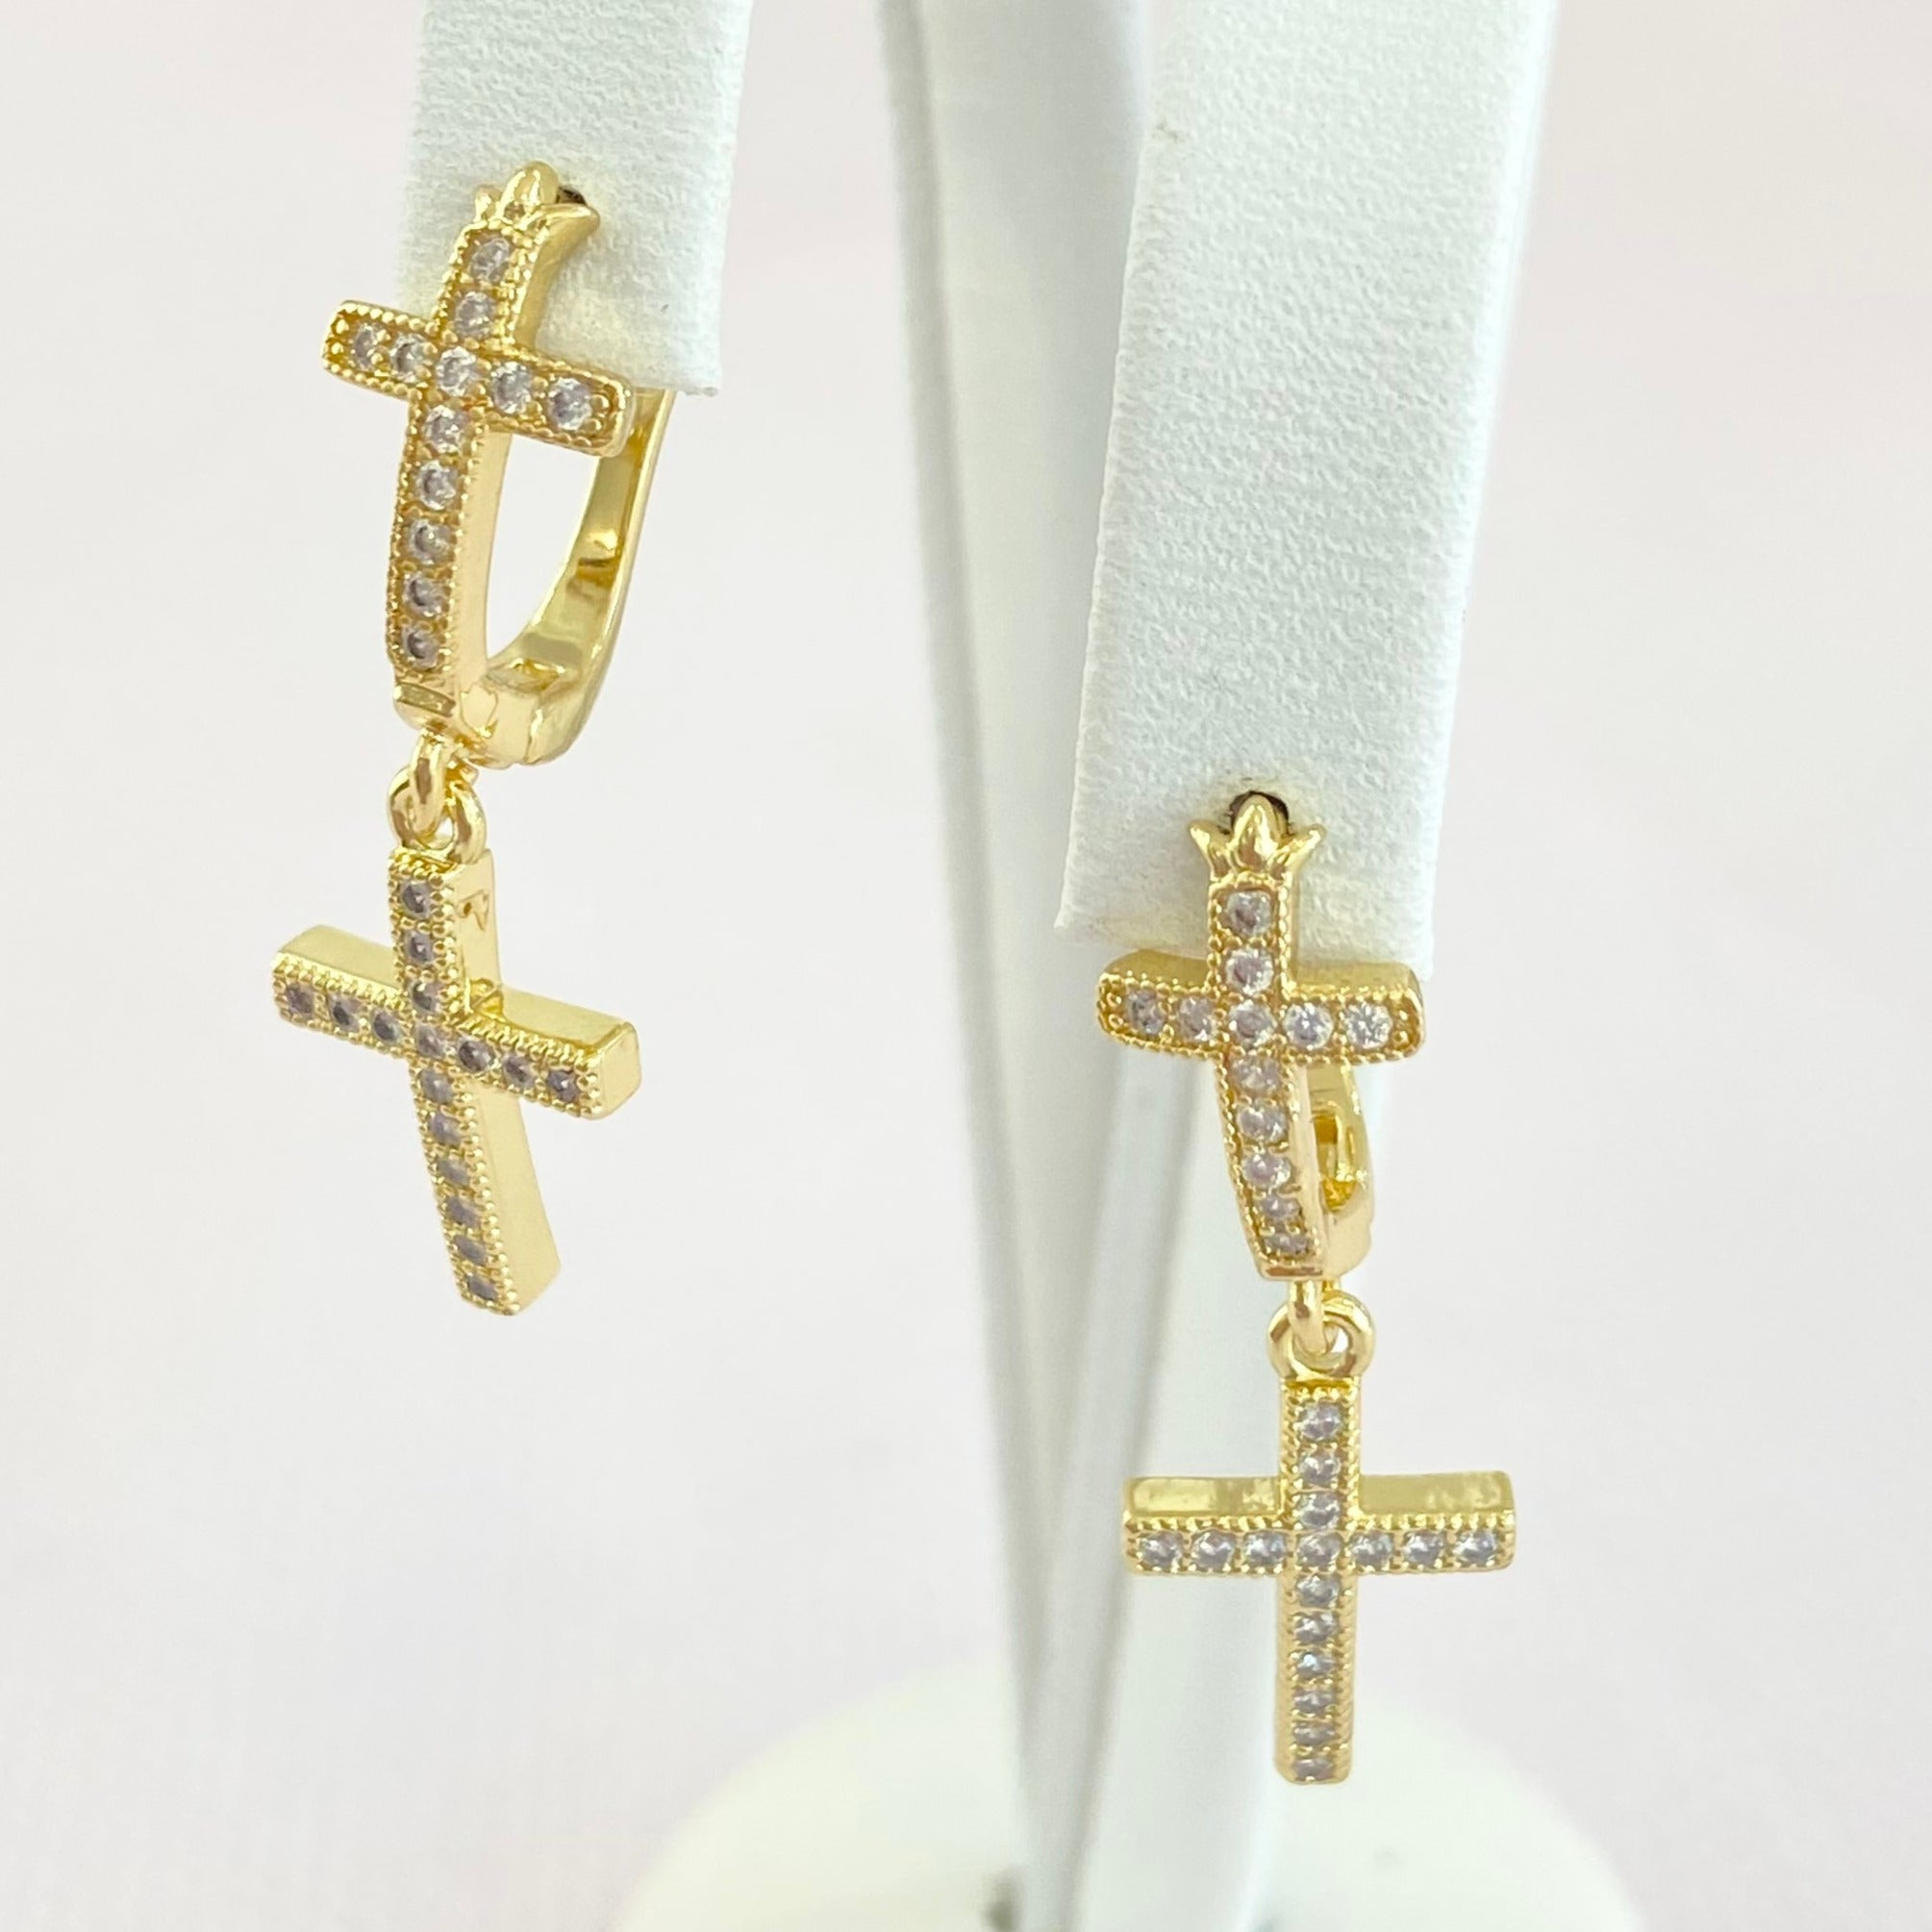 Gold Cross Rhinestone Earrings.